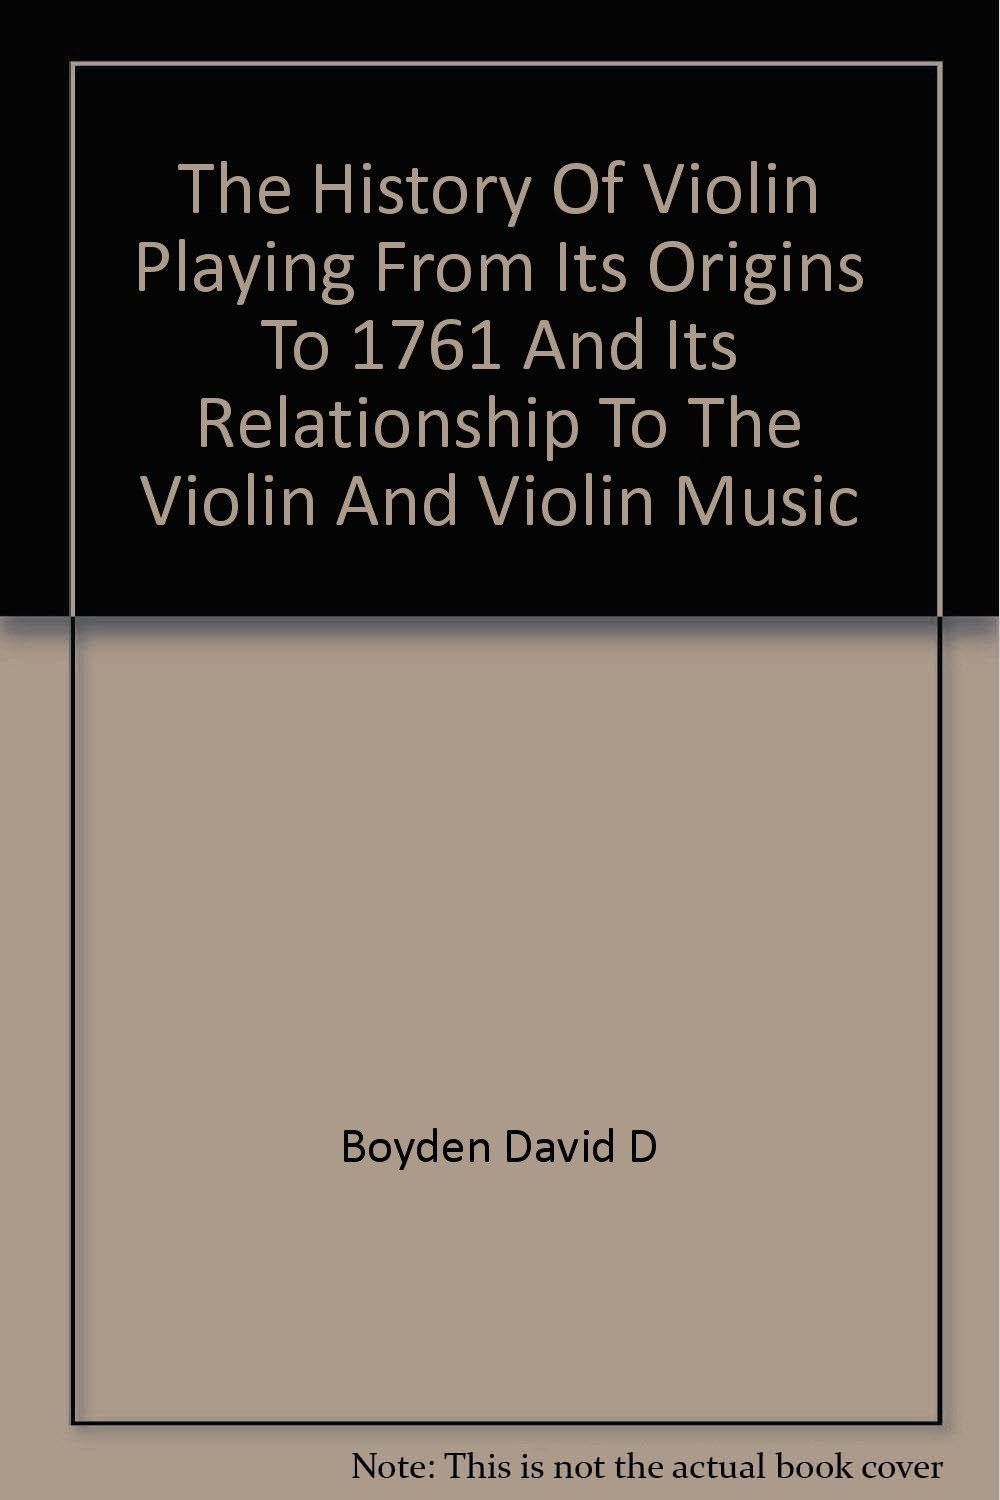 The History of Violin Playing, from Its Origins to 1761 and Its Relationship to the Violin and Violi